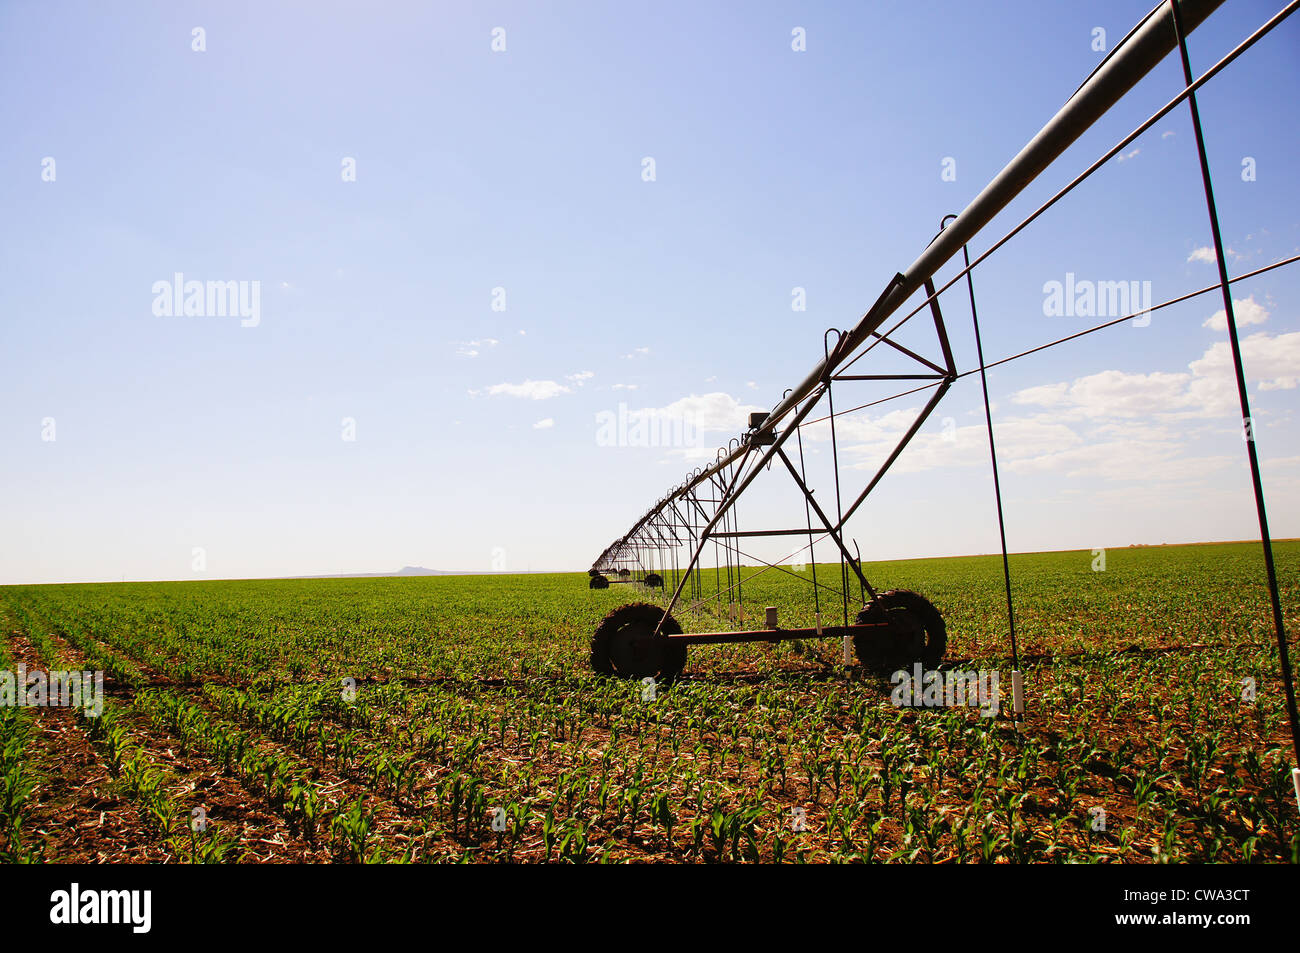 centerpivot irrigation called central pivot circle method crop in equipment rotates around crops watered - Stock Image